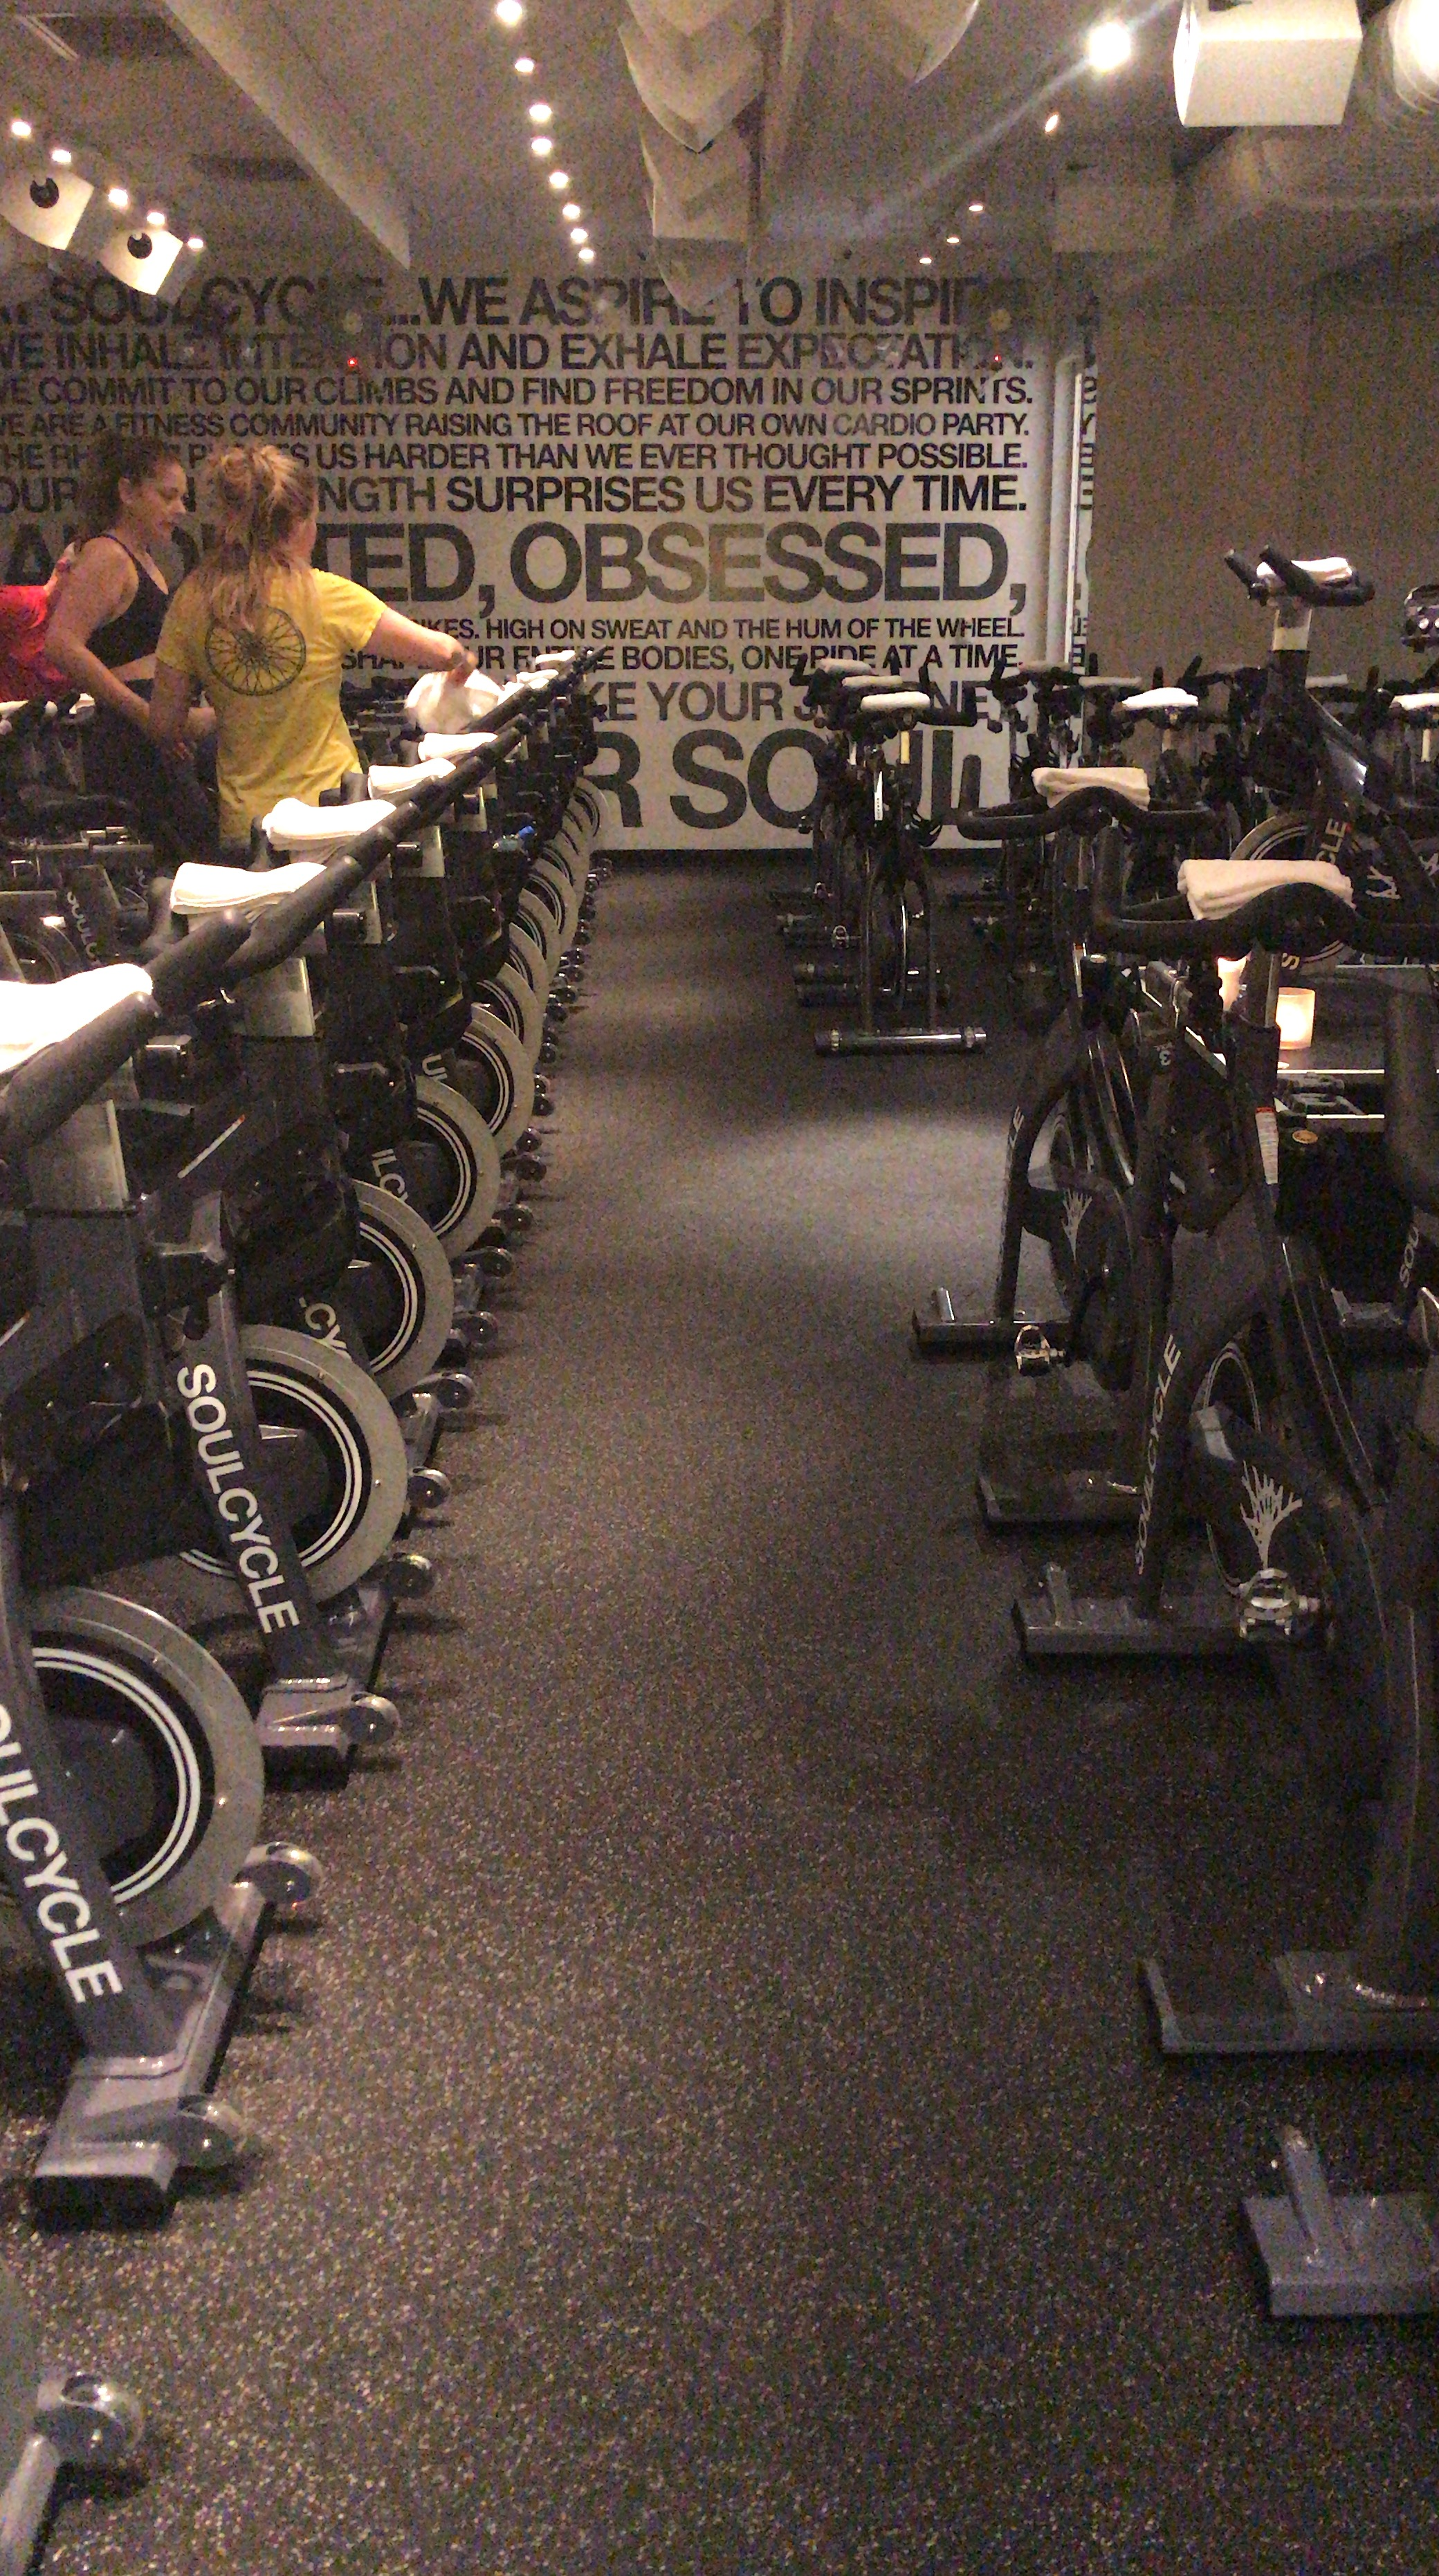 soulcycle_spin_studio.JPG